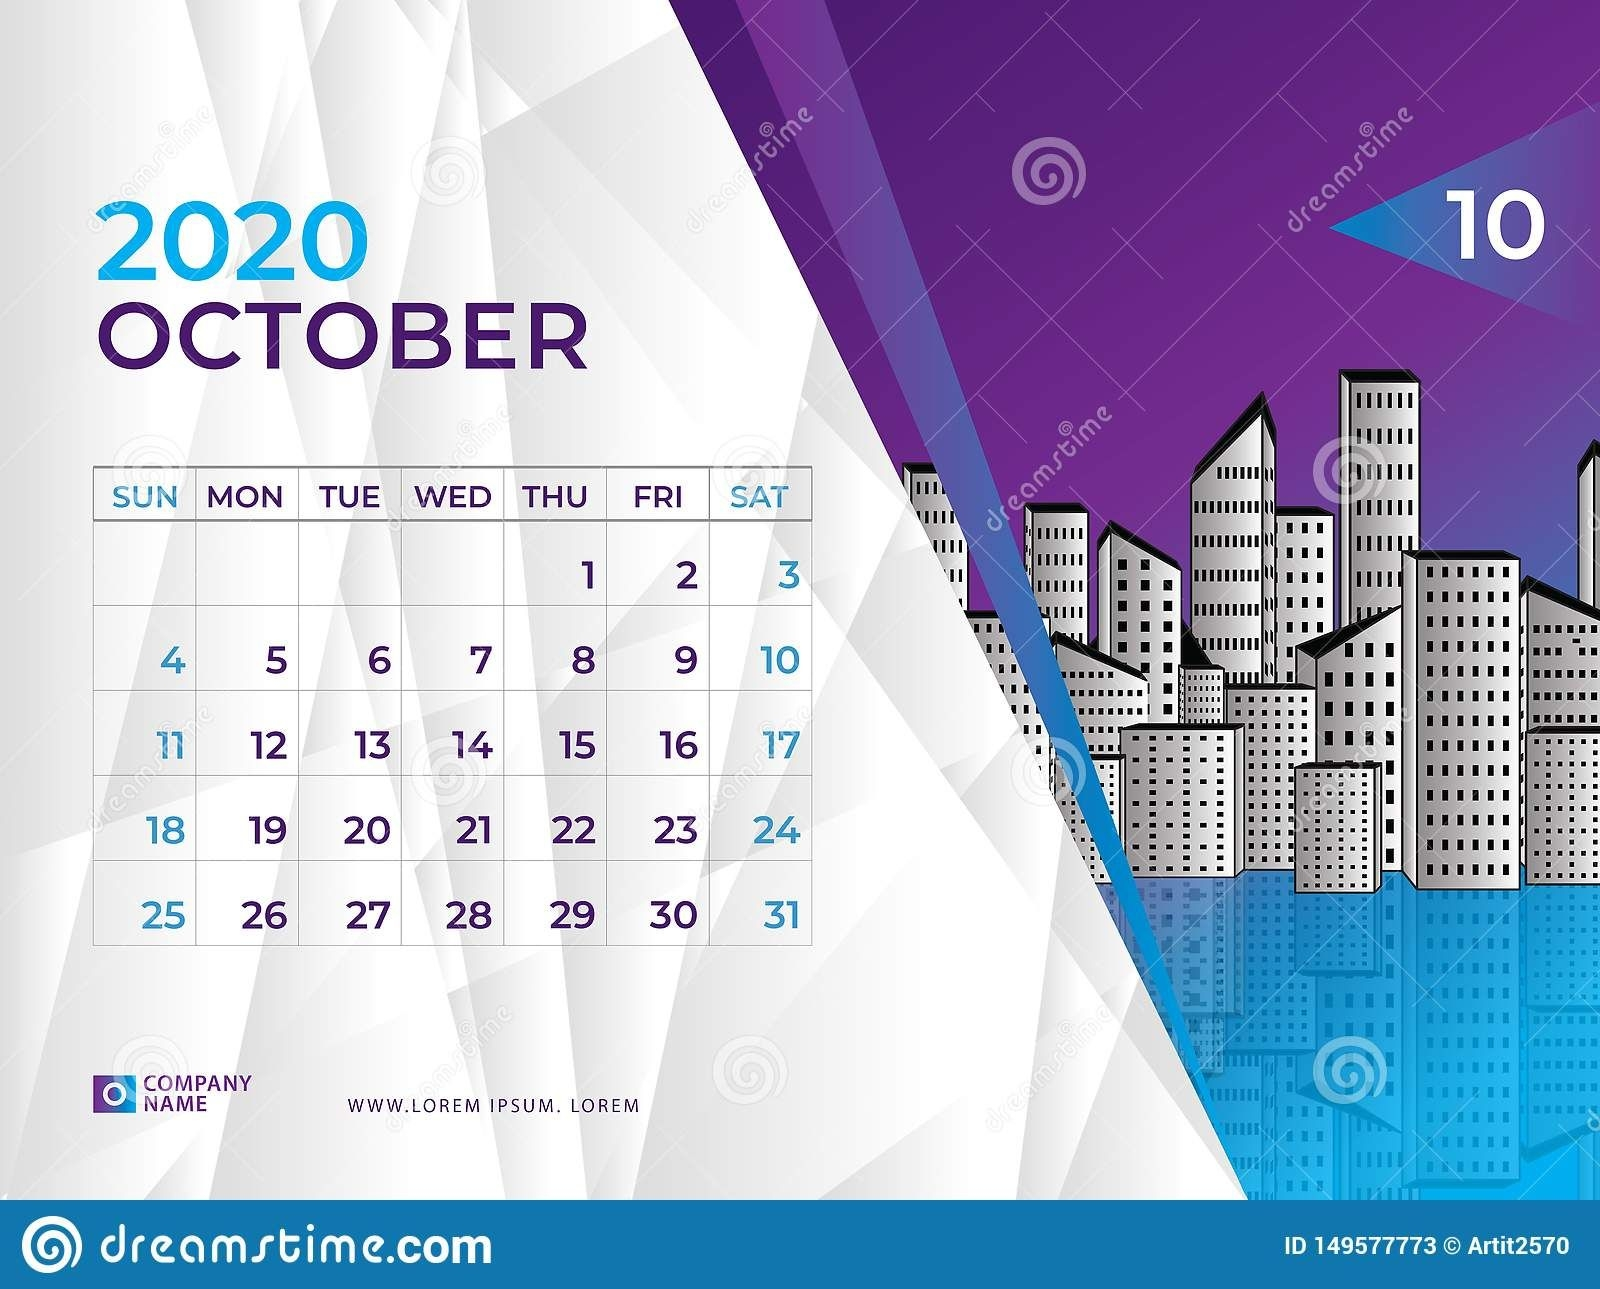 October 2020 Calendar Template, Desk Calendar Layout Size 8